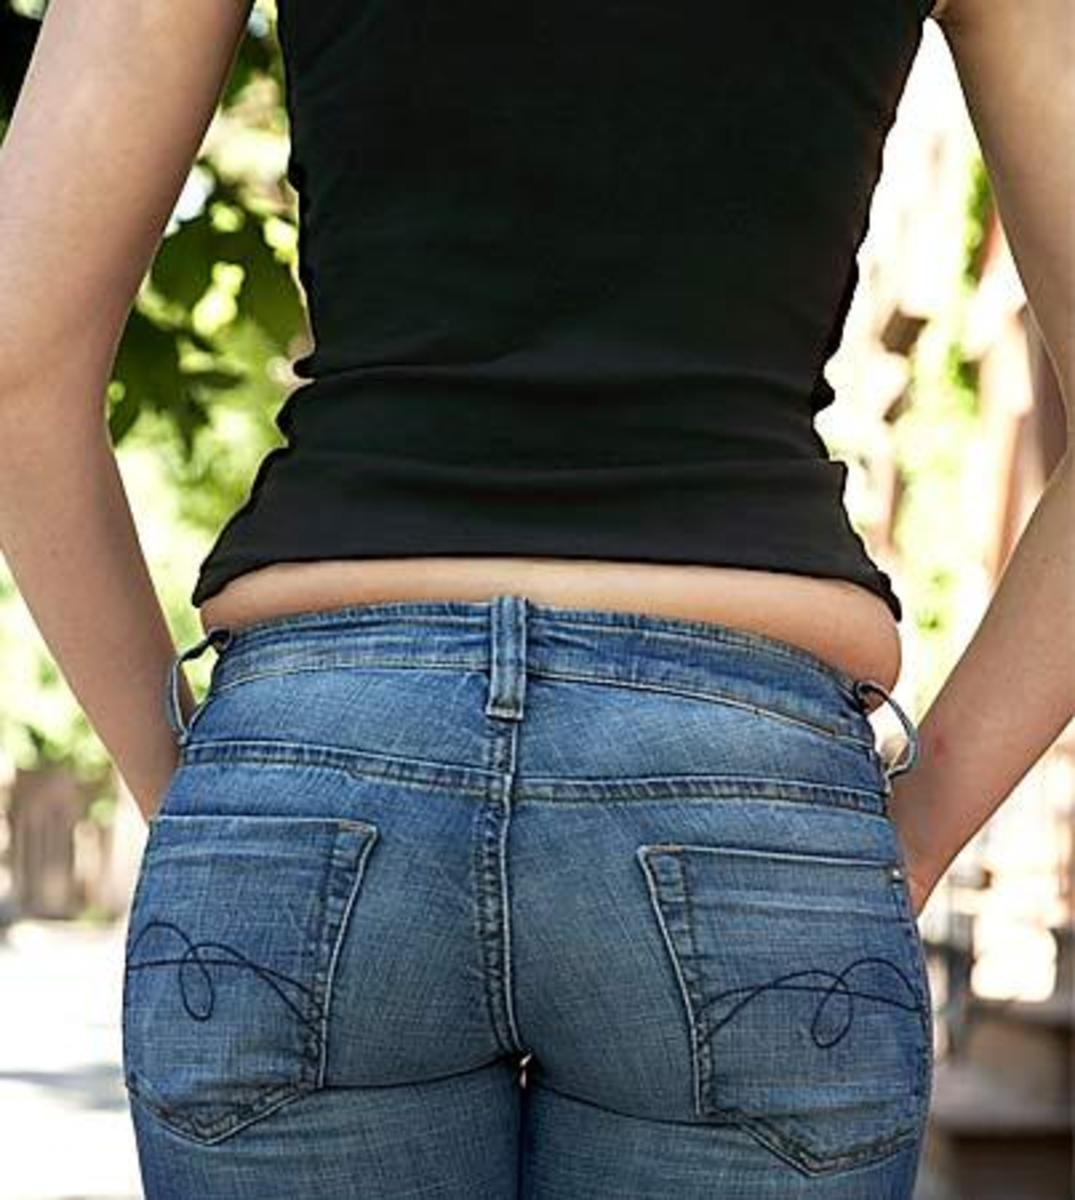 "Here's a classic example of the dreaded ""muffin top"" that most of us know so well."